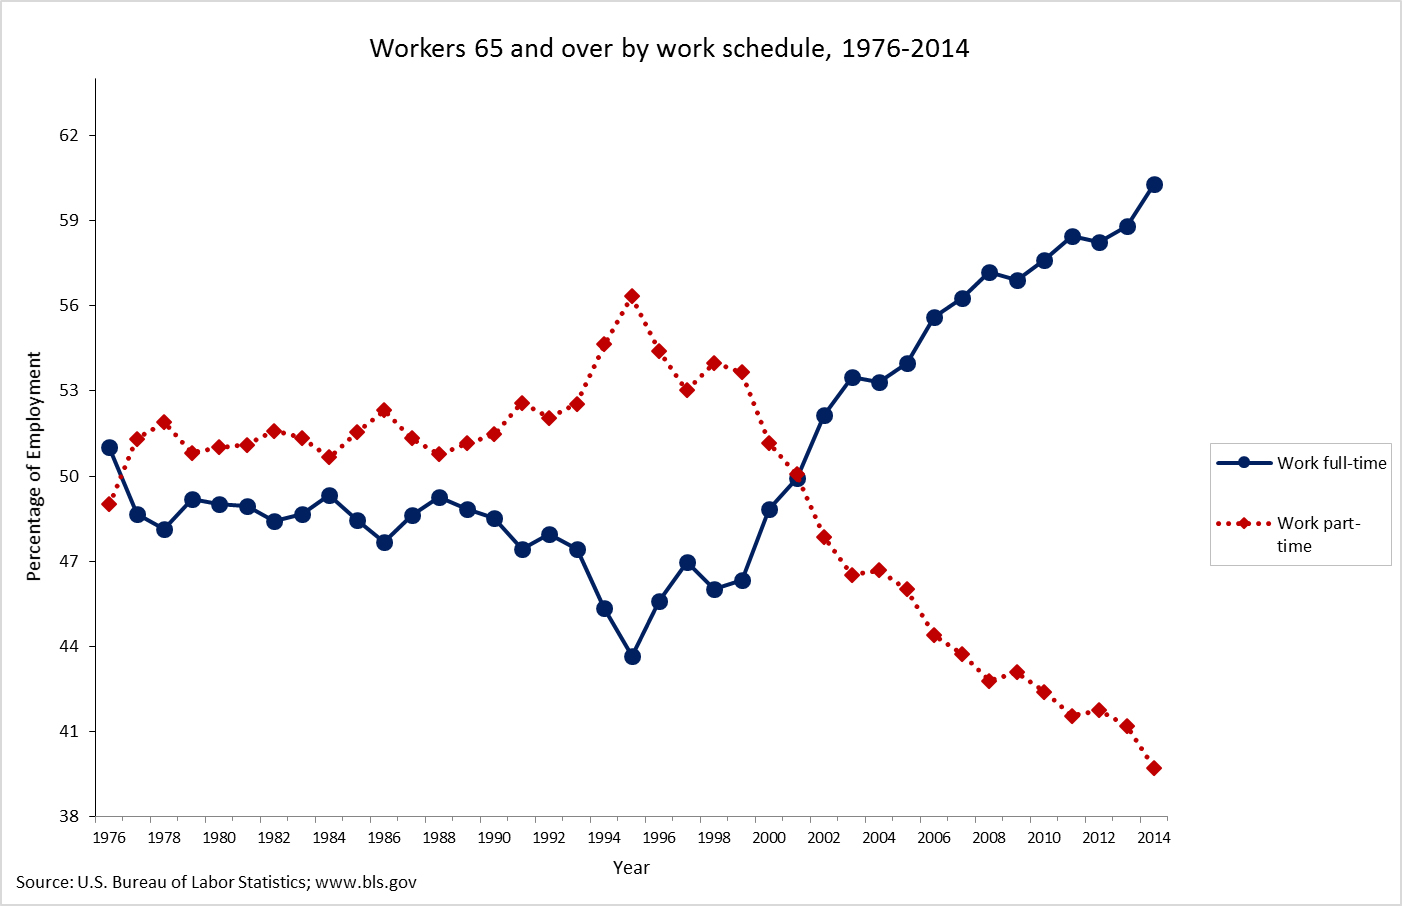 Graph showing workers 65 and over by work schedule (full-time versus part-time), from 1976-2014